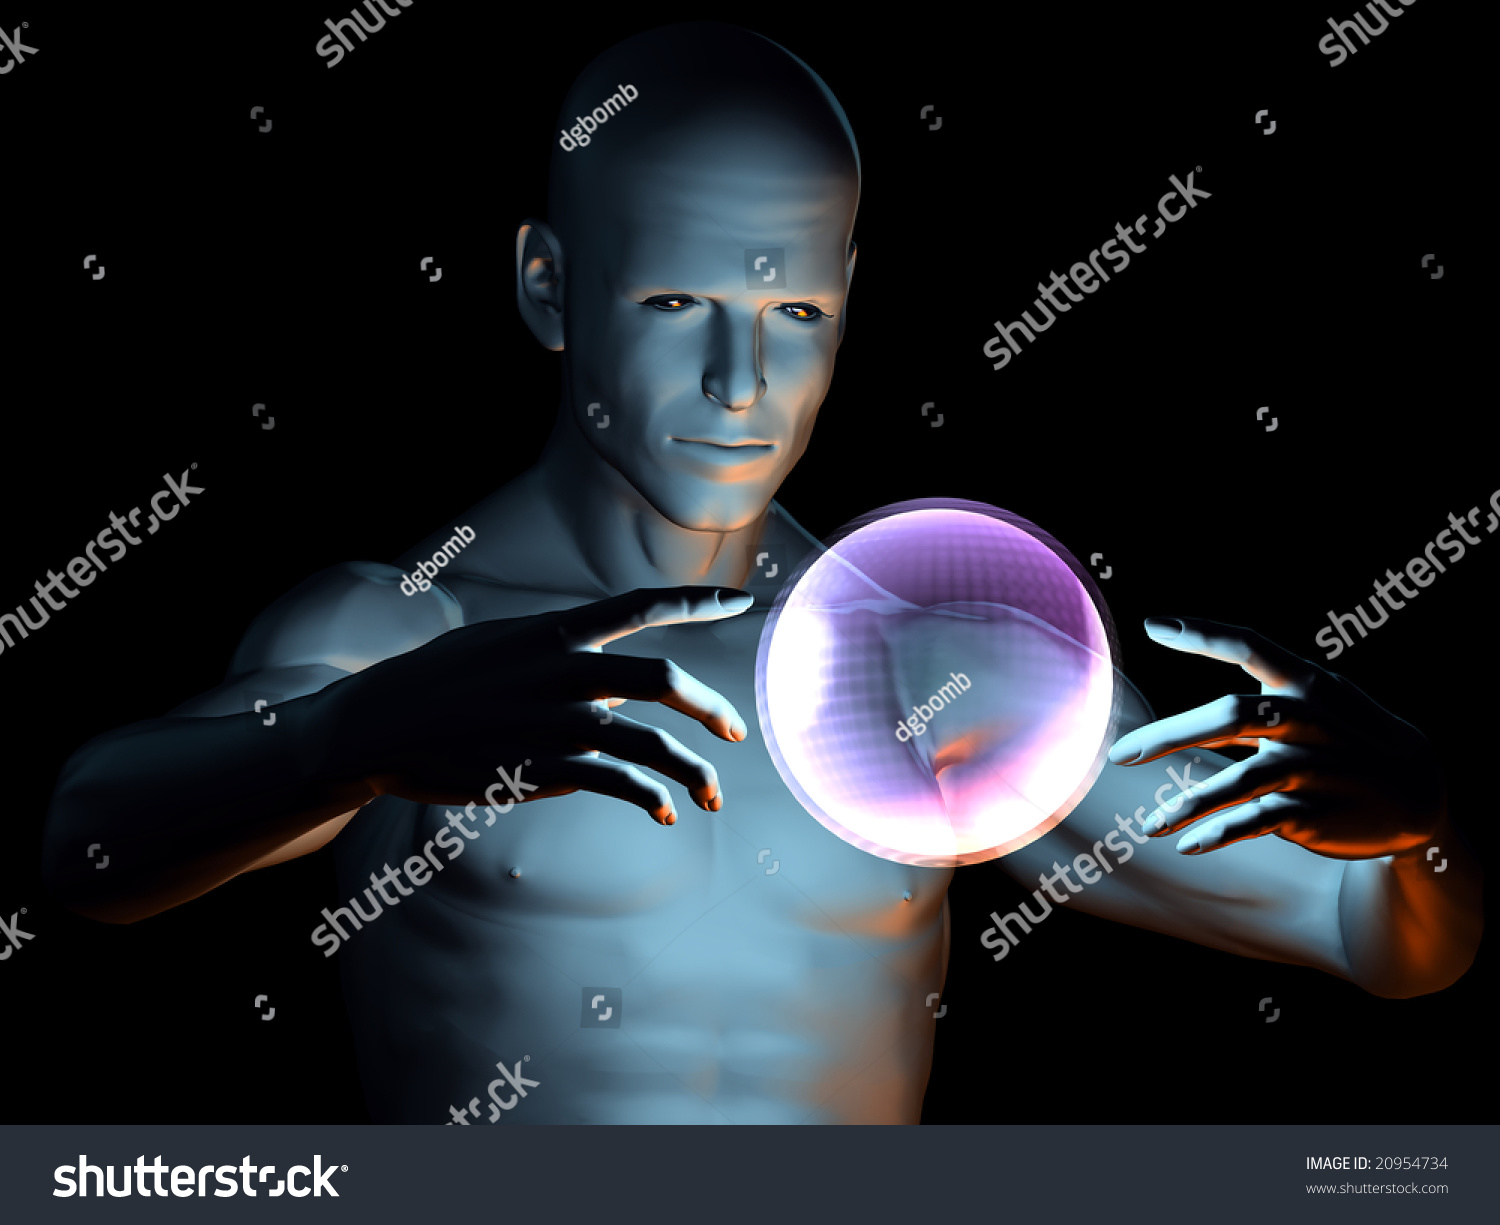 the man with magic hands Turn around, while keeping your hands always behind you and explain that  to rub the coin into your elbow/forearm while playing hype man for your onlookers.